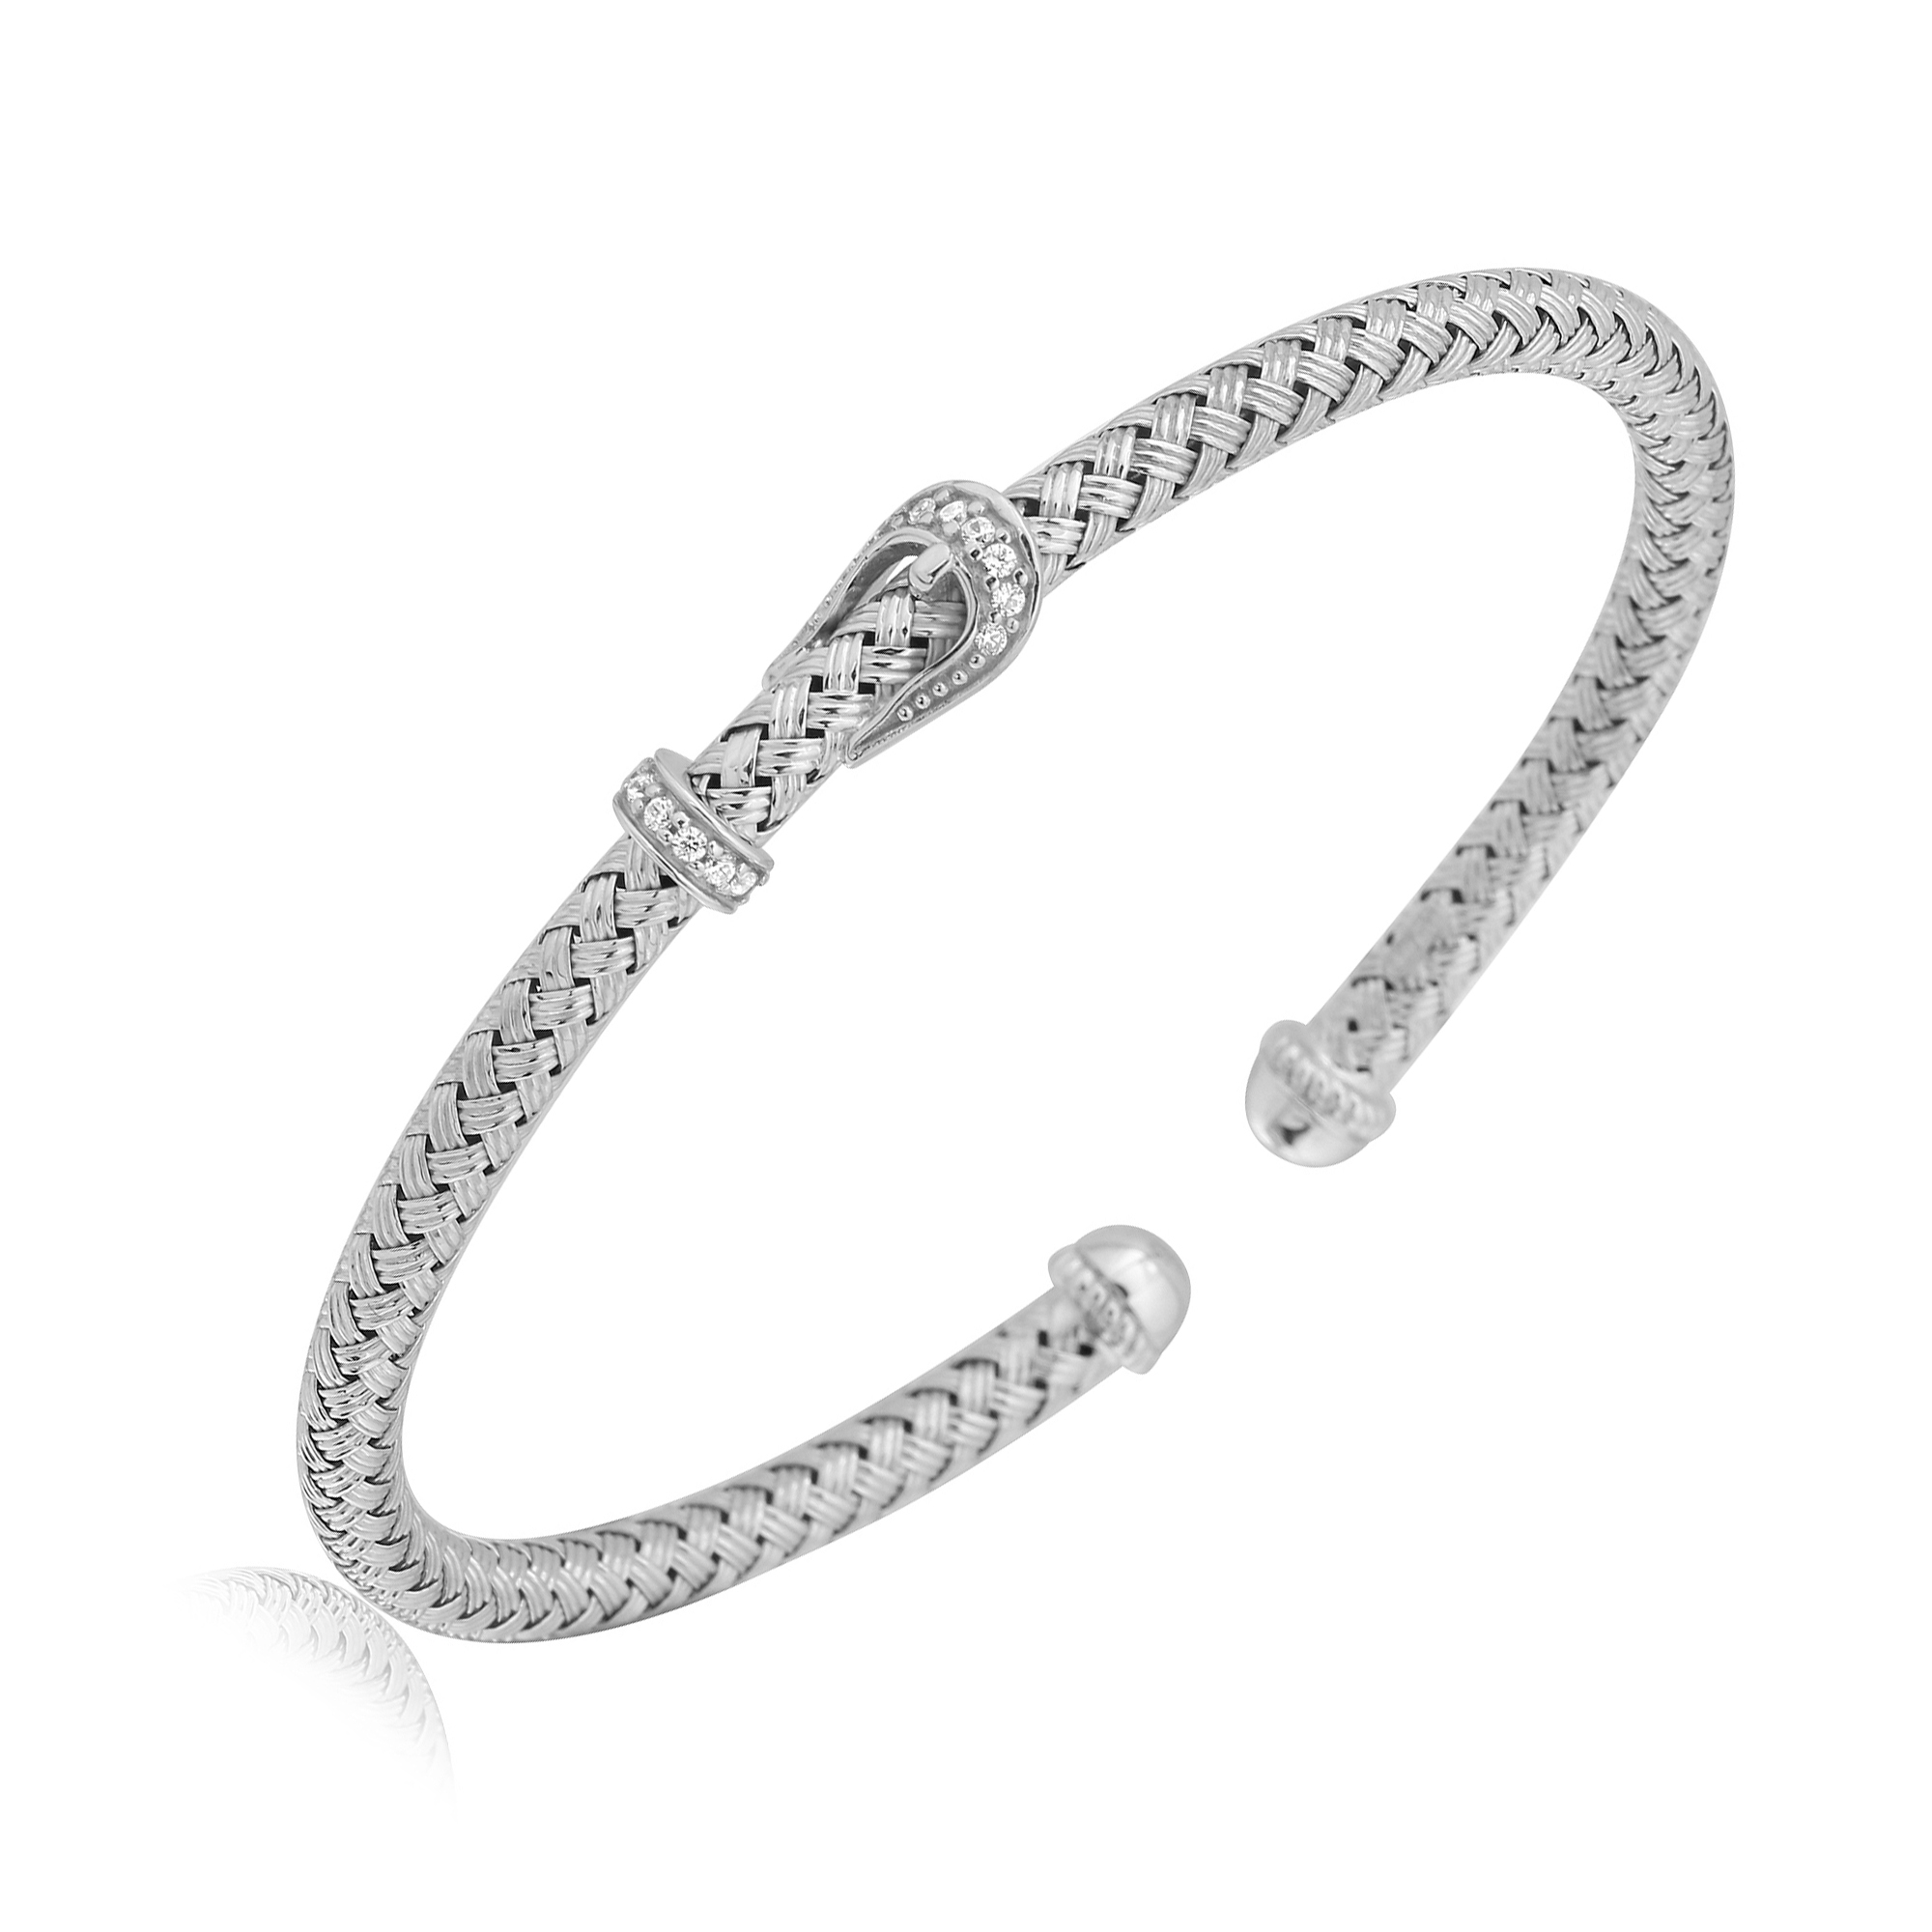 p grams sterling tone oval bangles plated rose weight silver width bead cuff mm length rhodium bangle